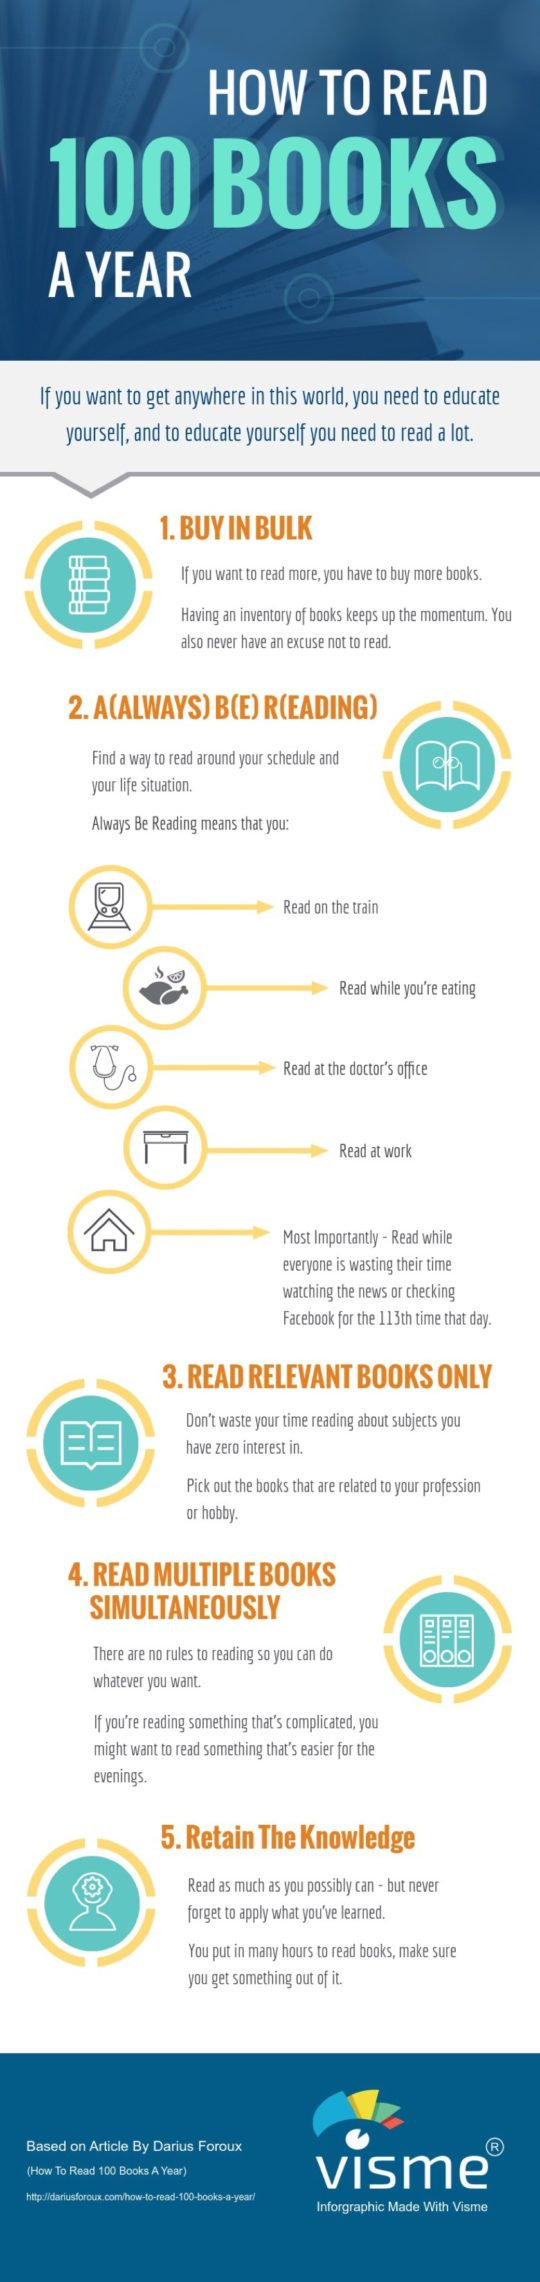 Here's is how to read 100 books a year #infographic